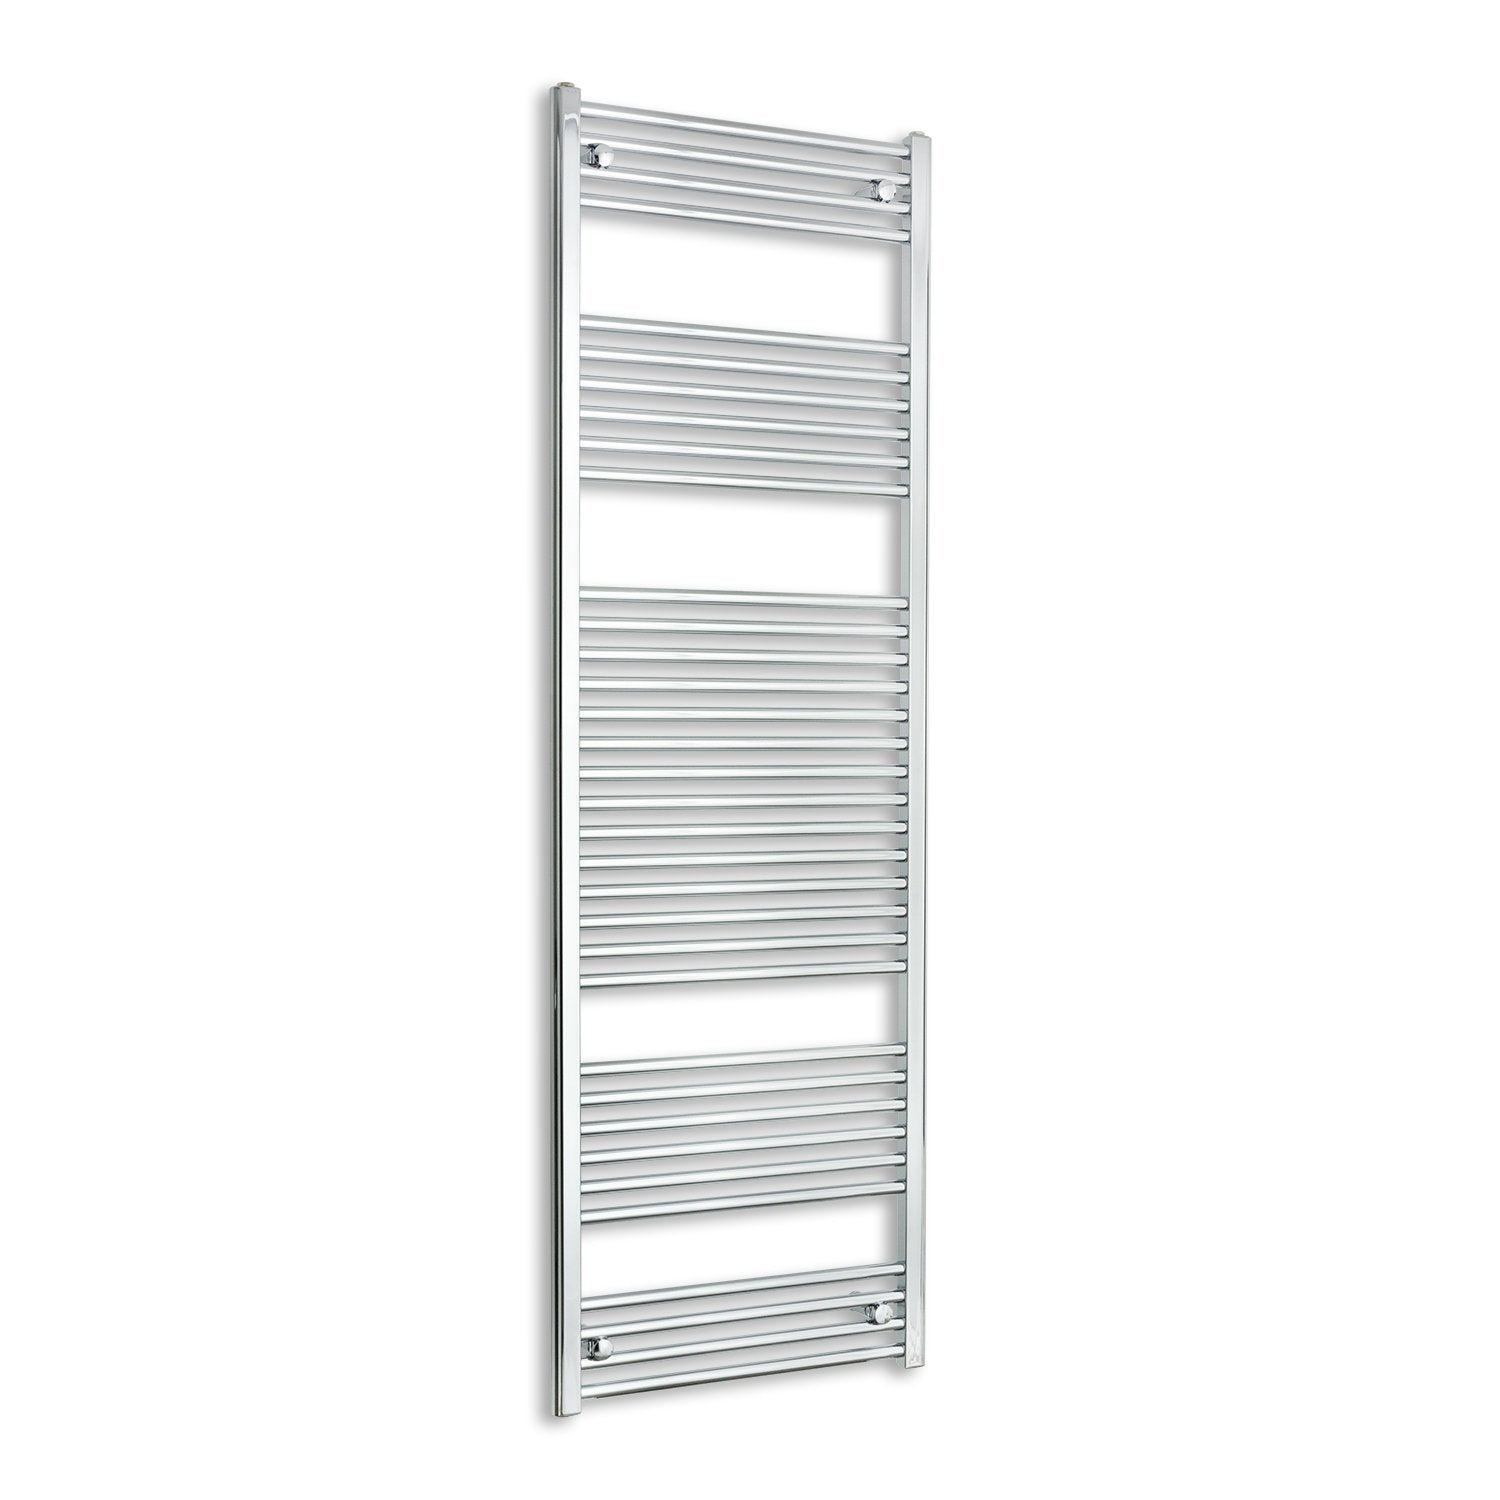 500mm Wide 1800mm High Straight Chrome Heated Towel Rail Radiator HTR,Towel Rail Only